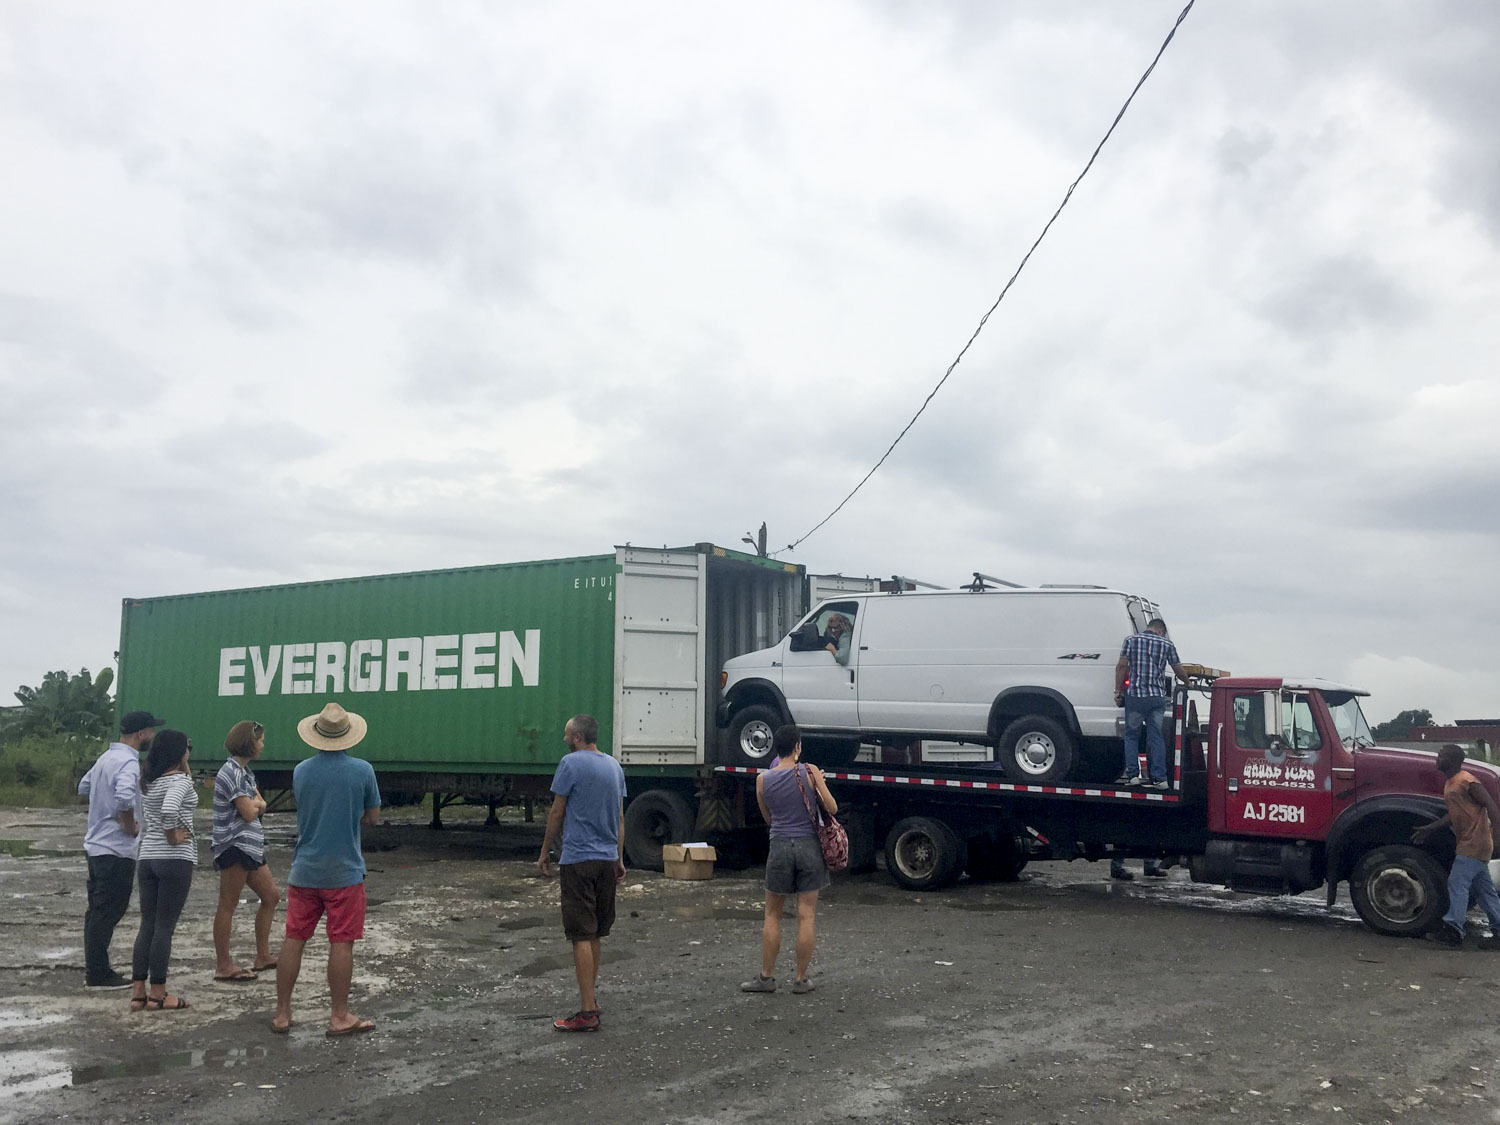 Loading the van in the container